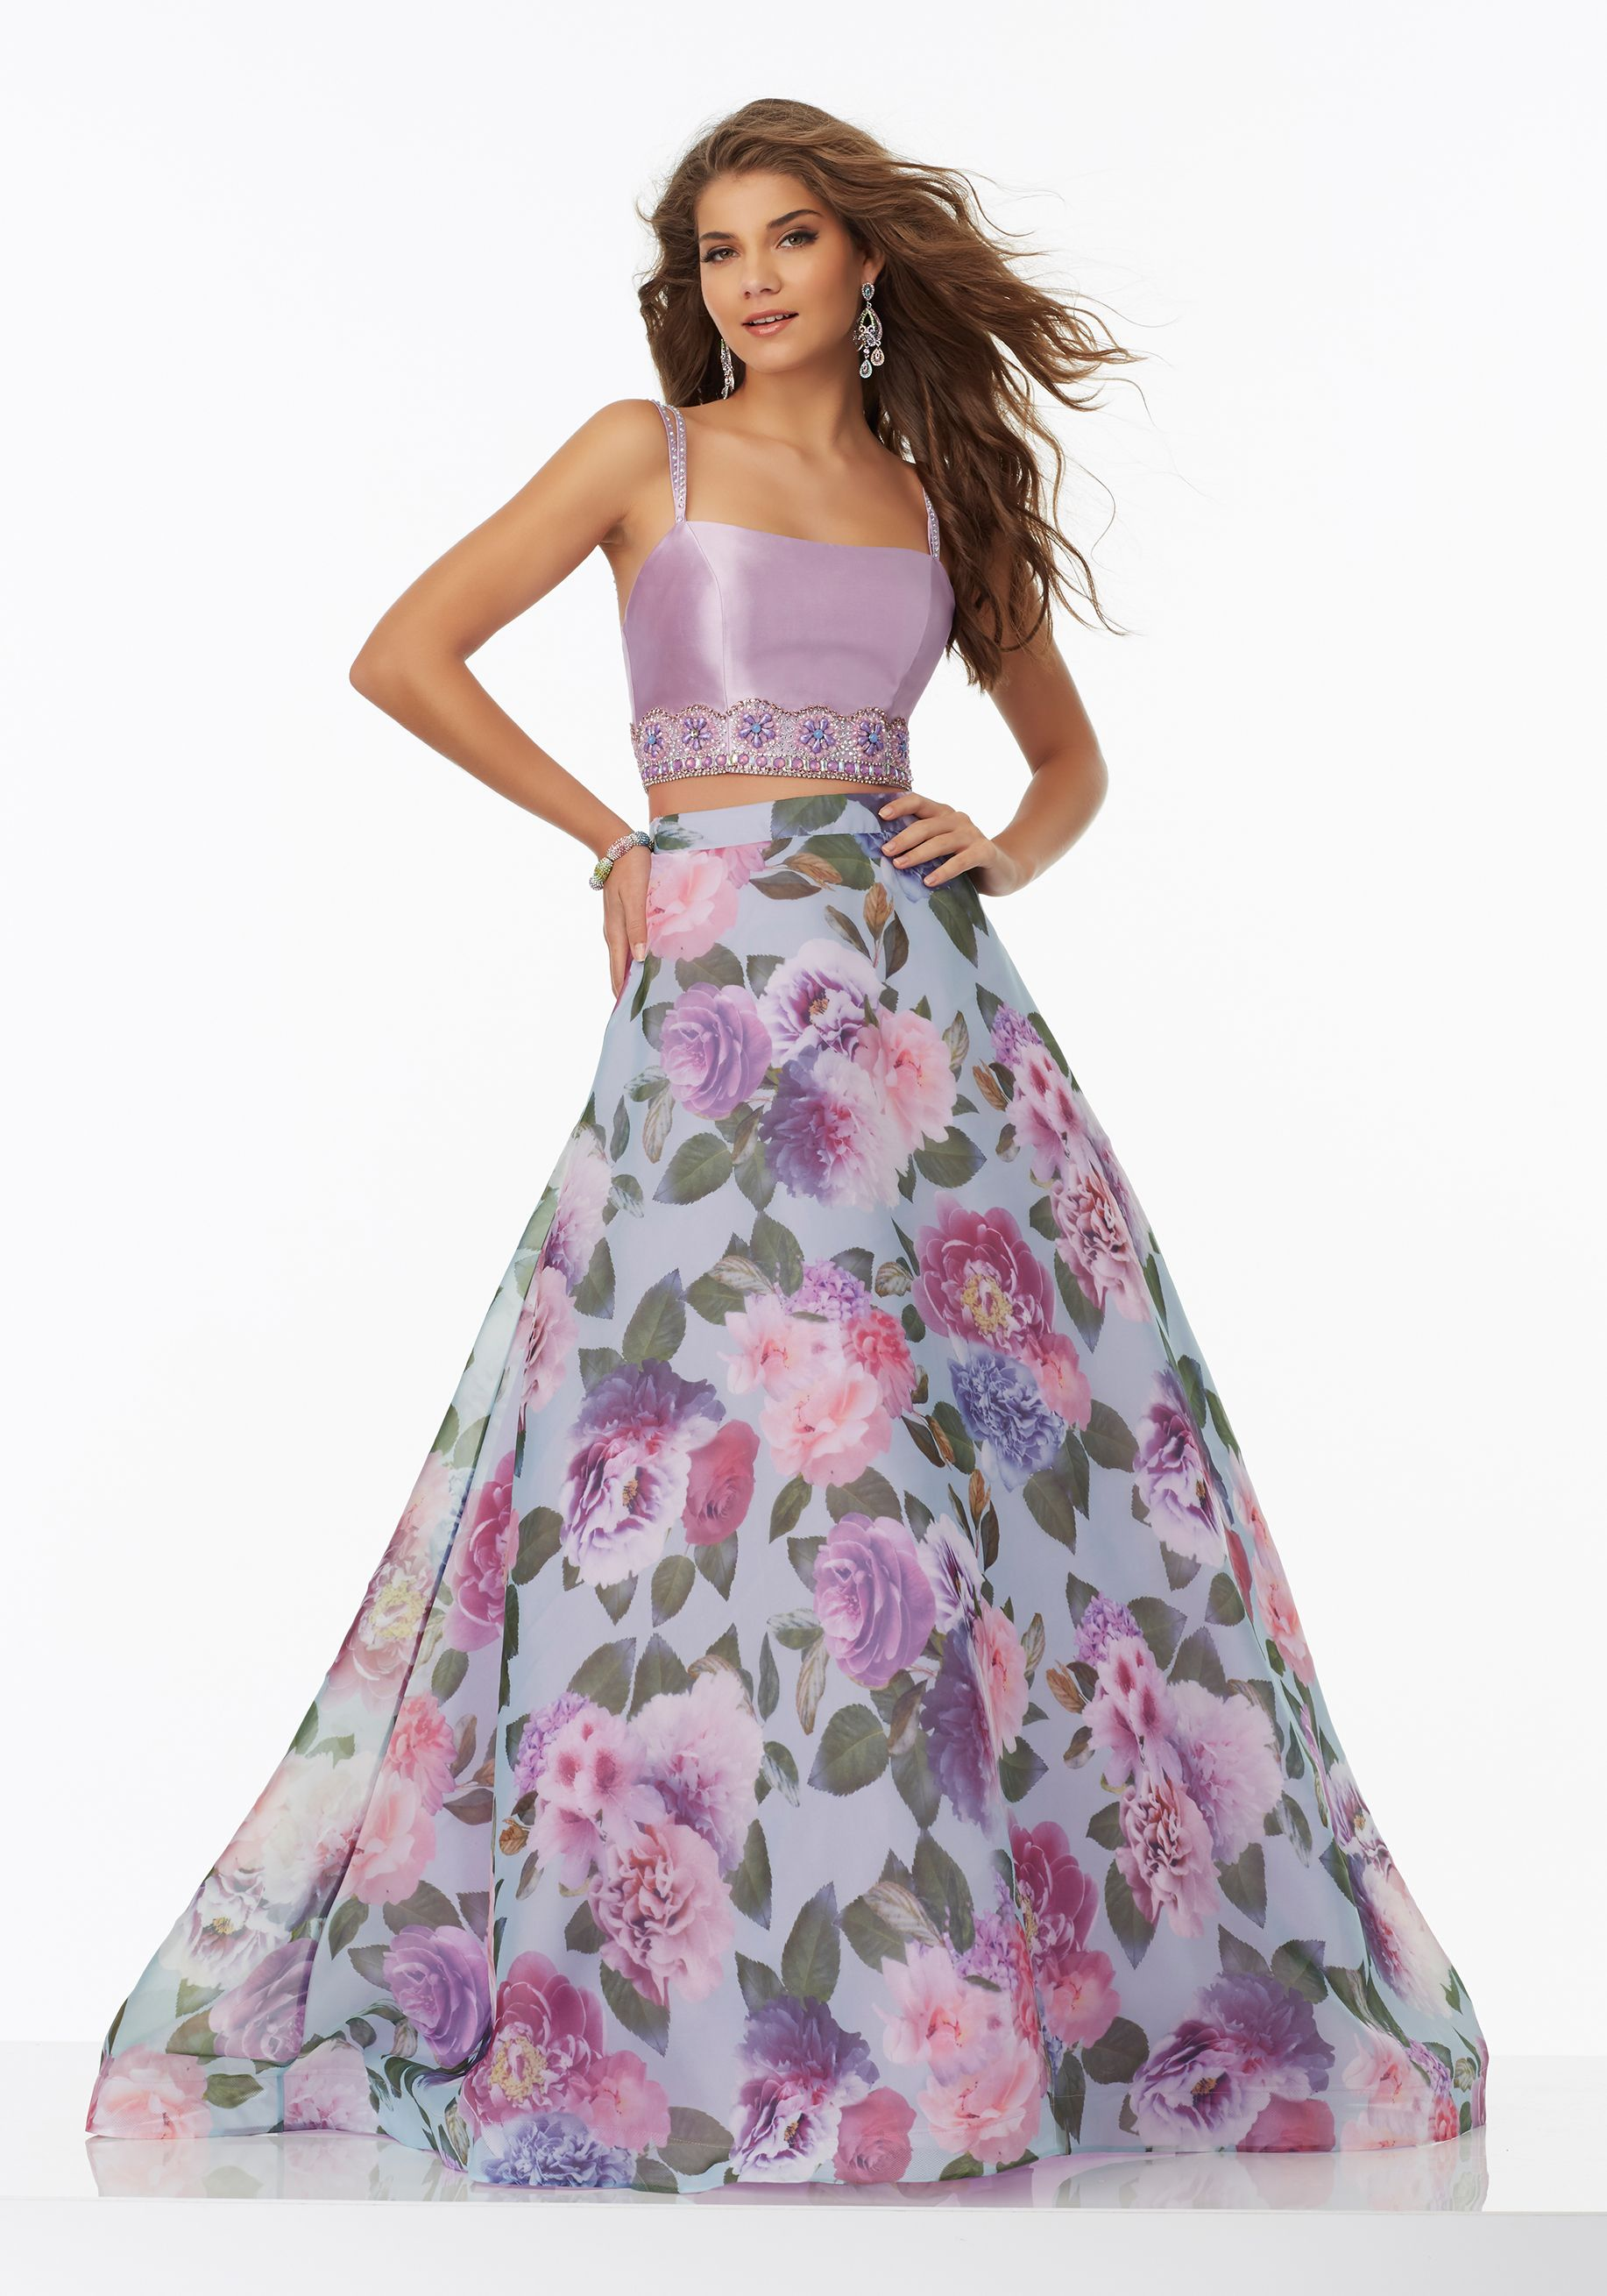 8a305b1fd Two-Piece Prom Dress with Floral Printed Organza Skirt and Beaded ...